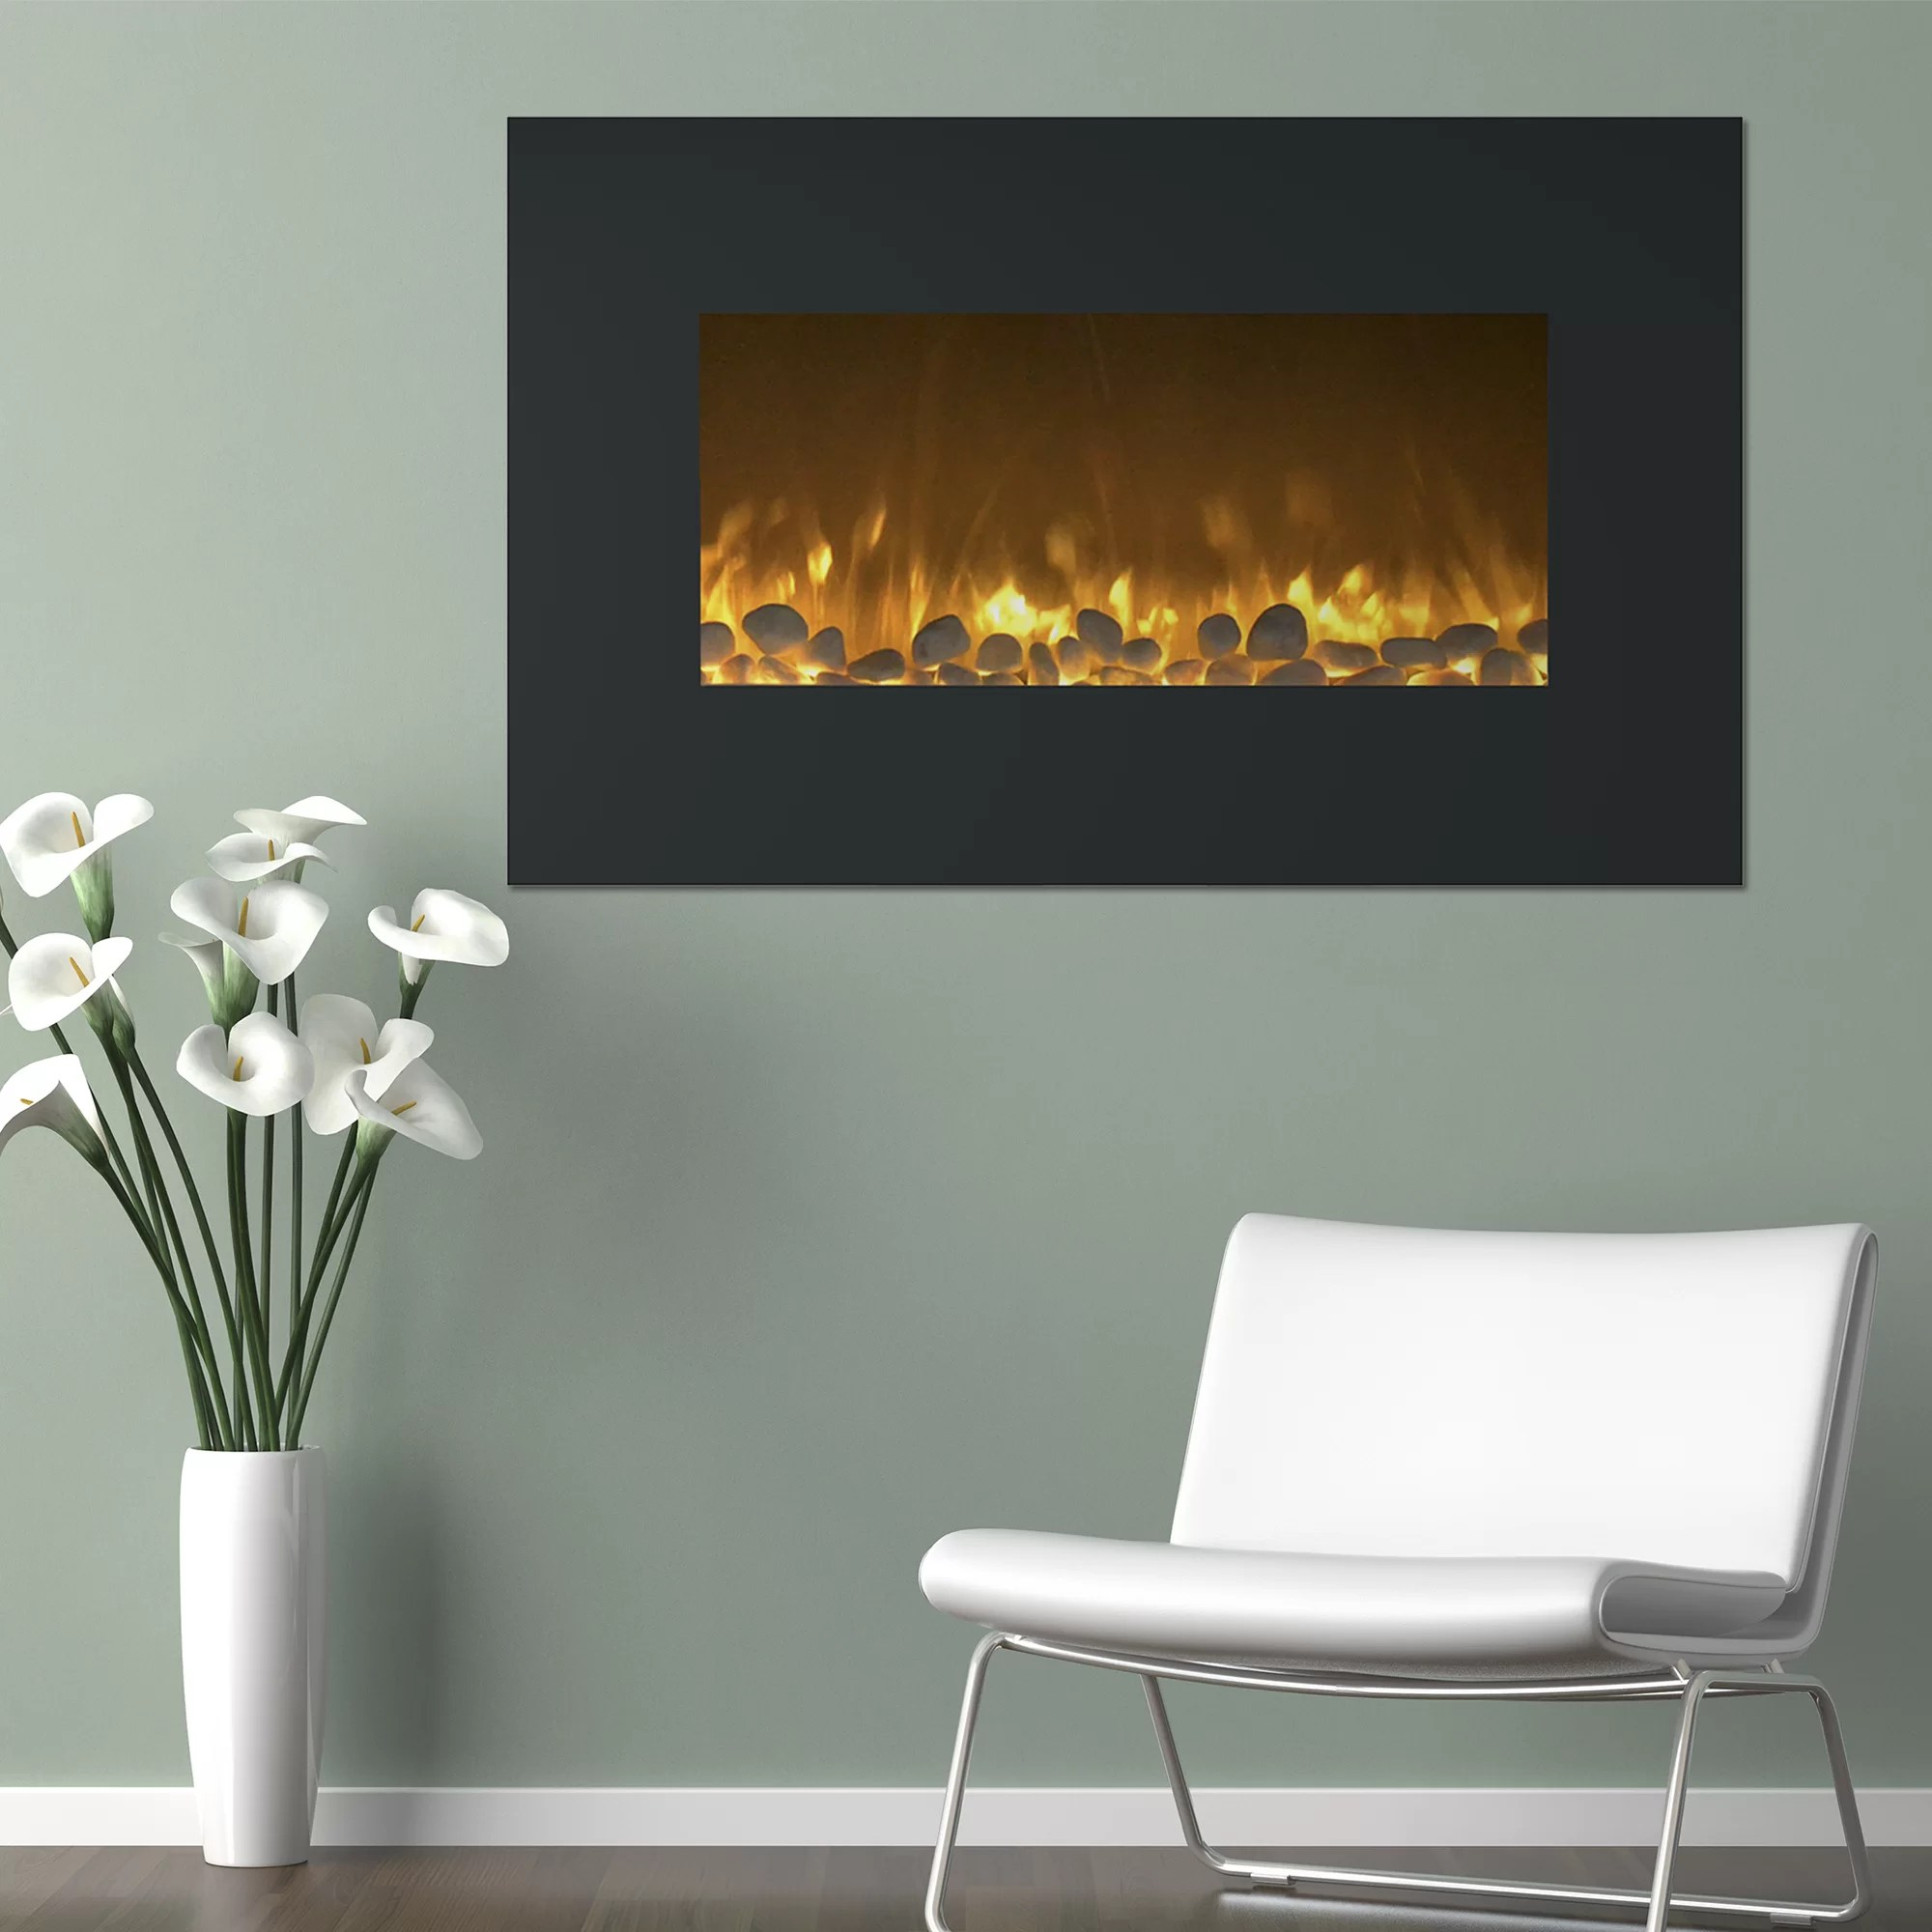 Northwest Flat Wall Mount Electric Fireplace & Reviews